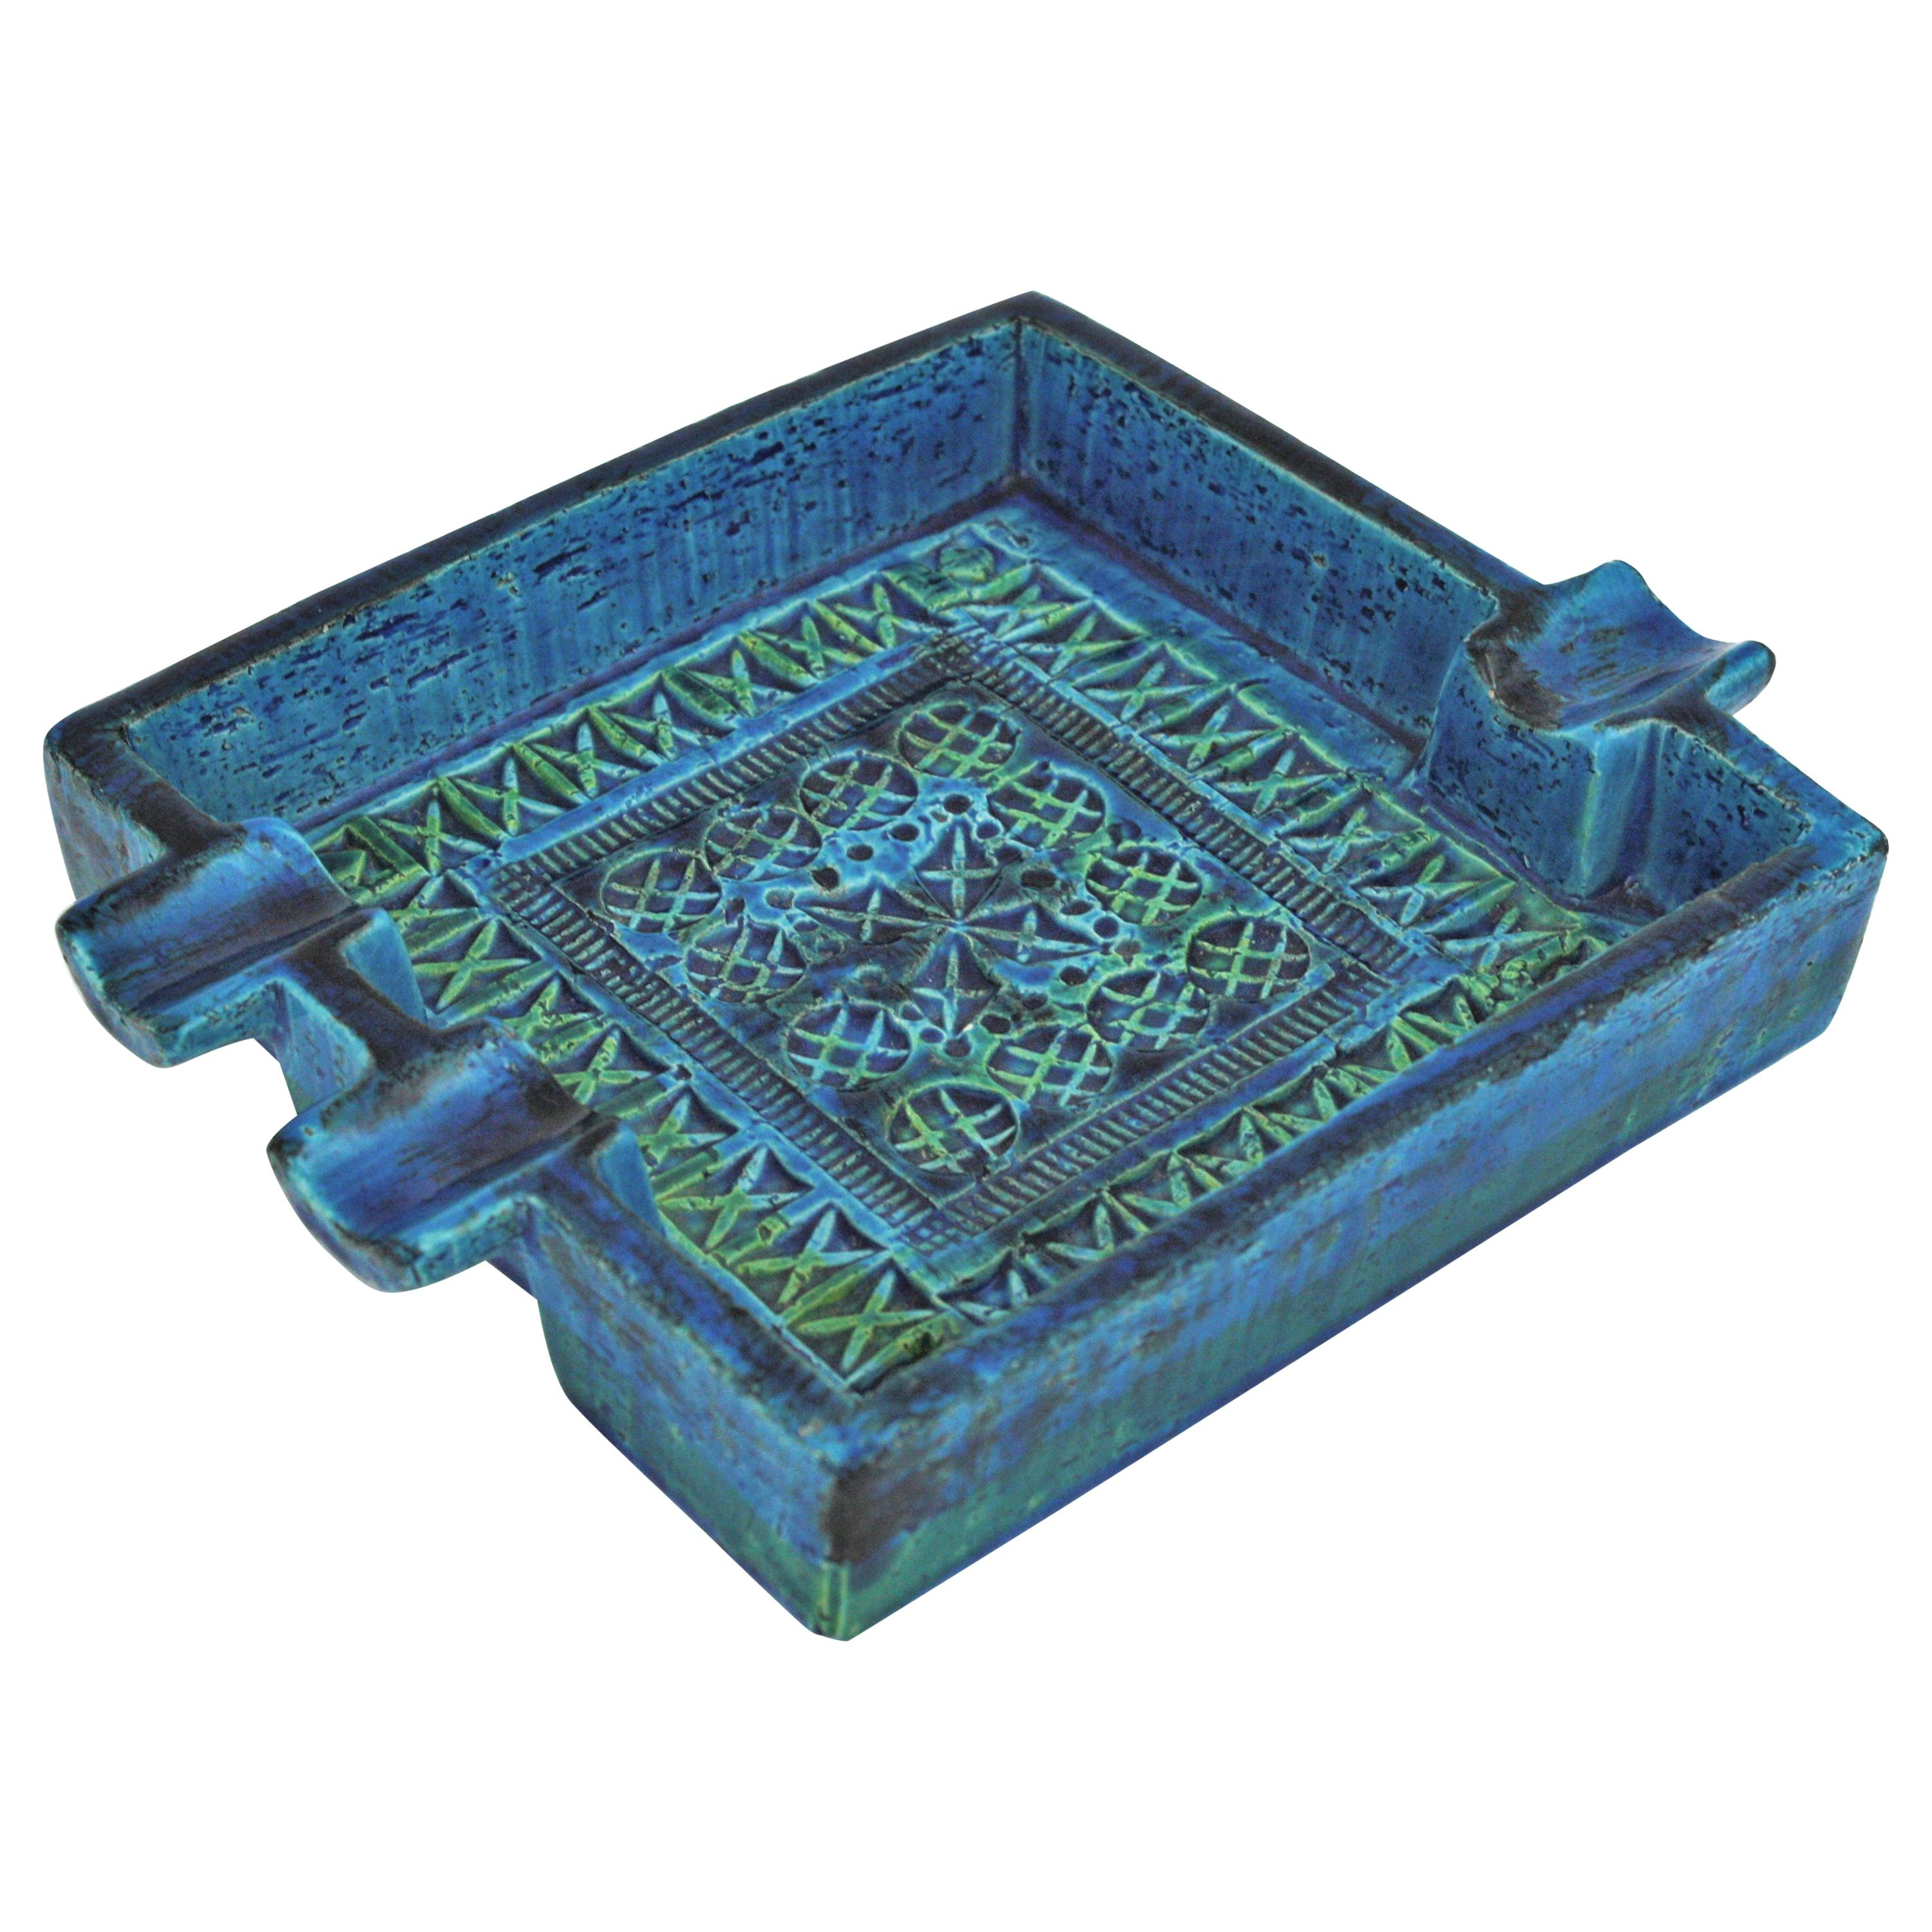 Bitossi Aldo Londi Rimini Blue Glazed Ceramic Large Square Ashtray